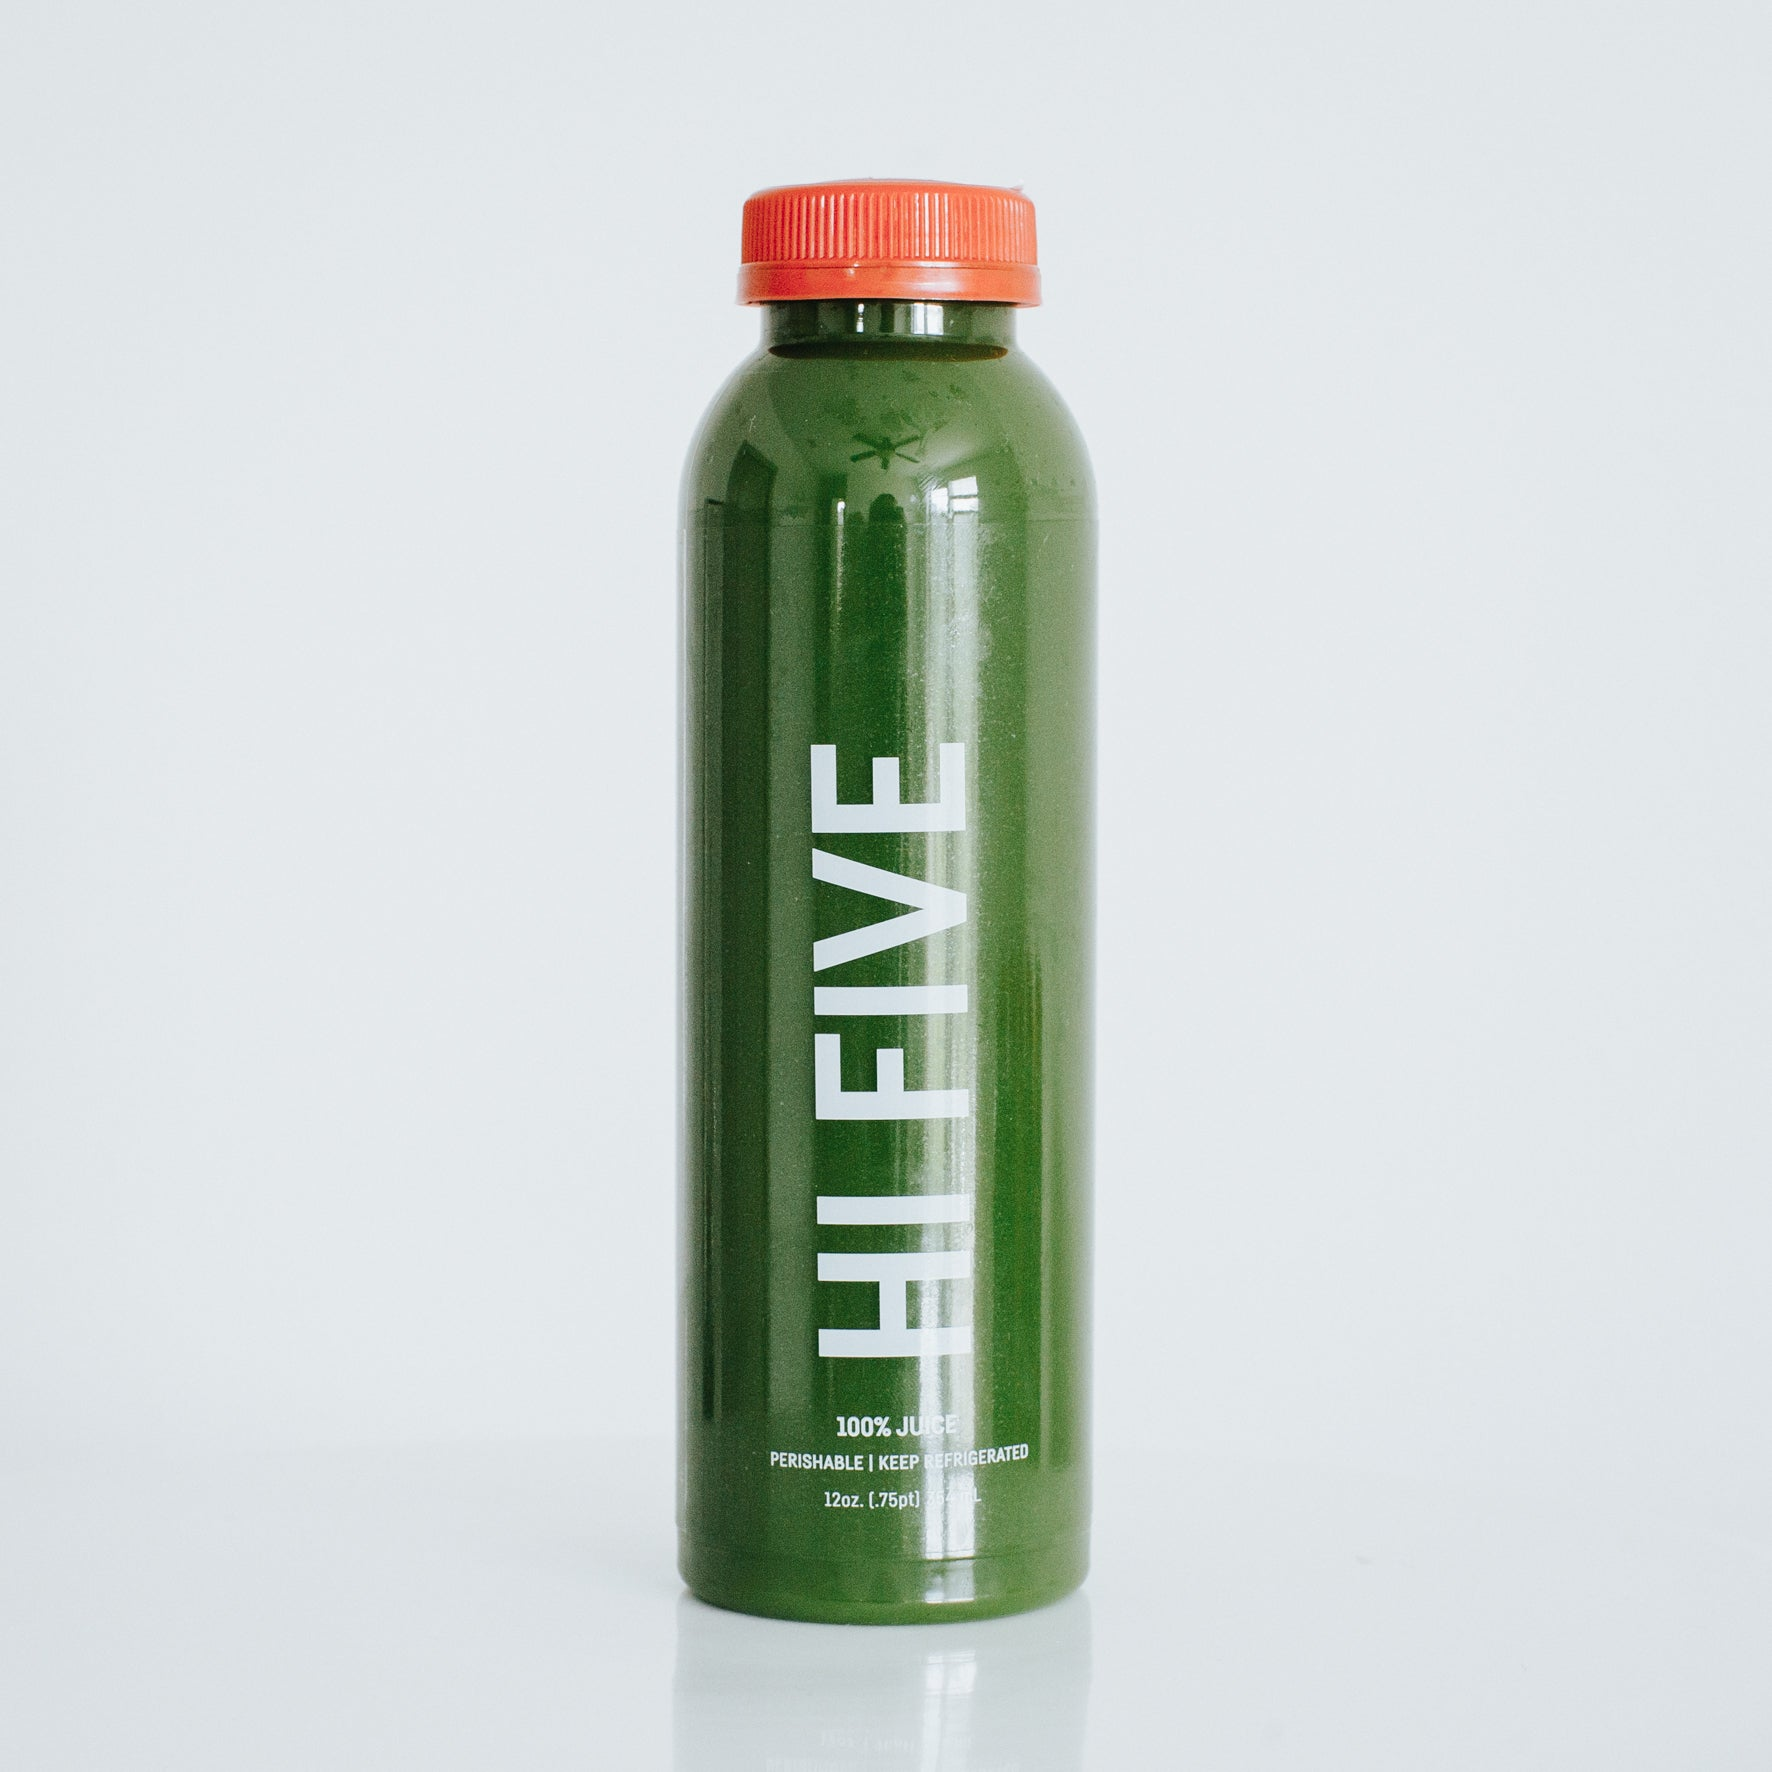 hi five. [spinach, cucumber, romaine, celery, parsley]